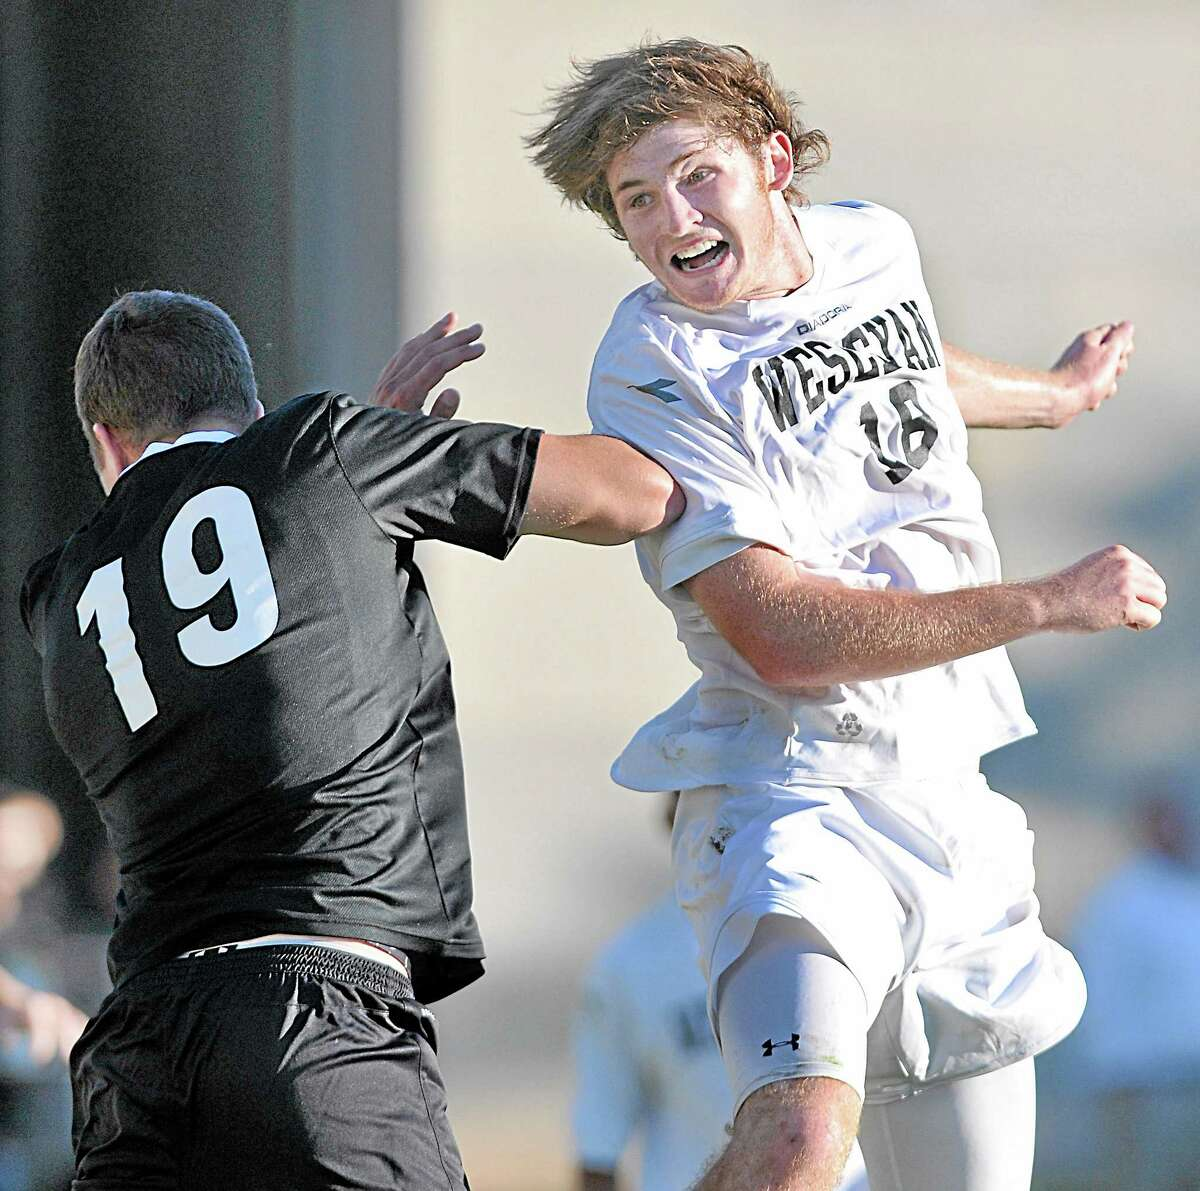 Wesleyan freshman Charlie Gruner looks to the goal after a header up and over Framingham State University senior co-captain Ryan Boughter in the second half of Wednesday's game at Jackson Field in Middletown. The Cardinals defeated the Rams 3-0.